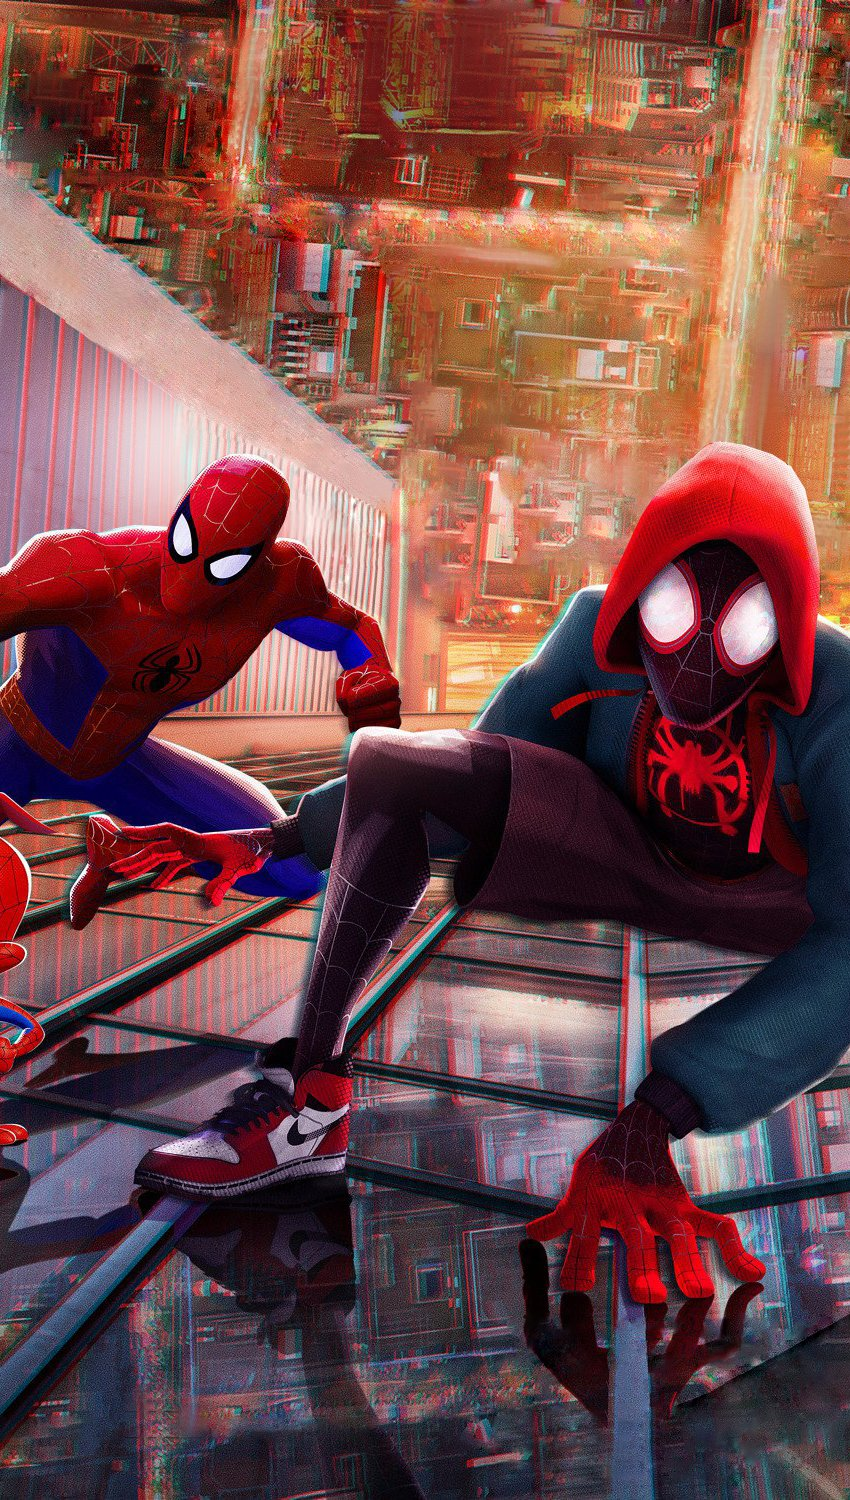 Wallpaper Characters Spider-Man: Into the Spider-Verse Vertical